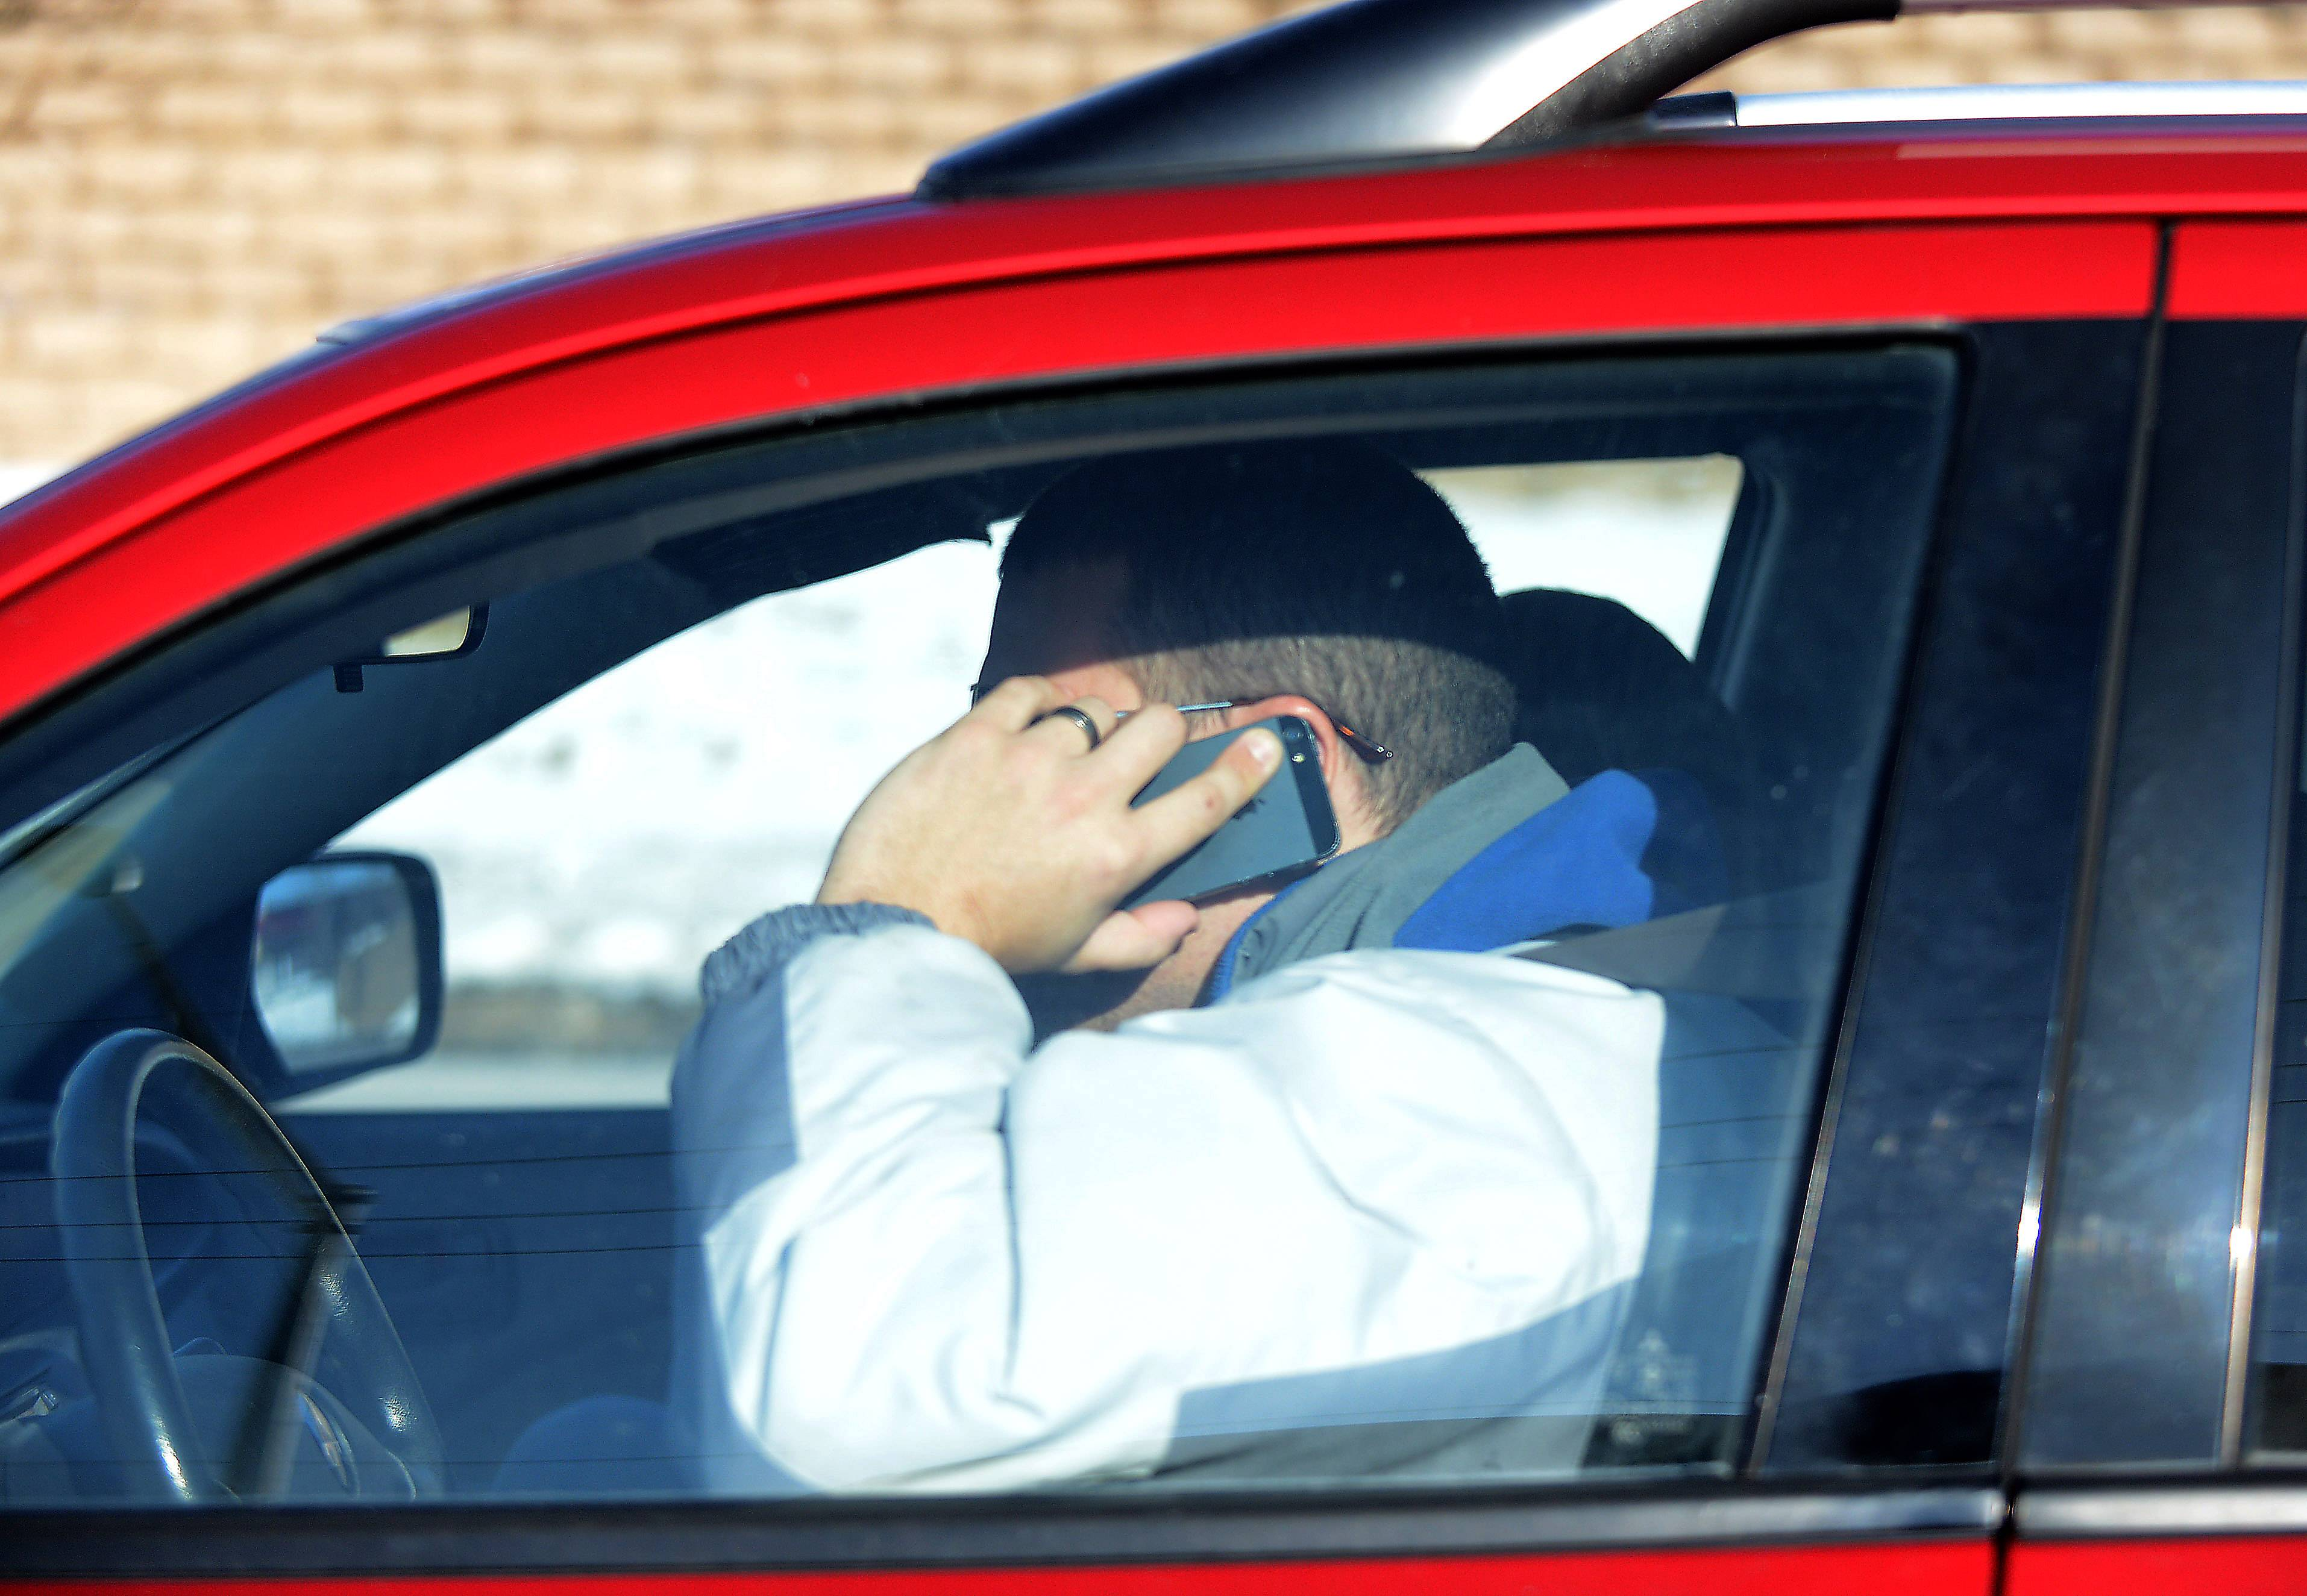 Rick West/rwest@dailyherald.com Despite it being illegal in Illinois to talk or text with a hand-held device and drive, the Daily Herald staff spotted 1,000-plus scofflaws in a hour who just couldn't break the connection addiction.